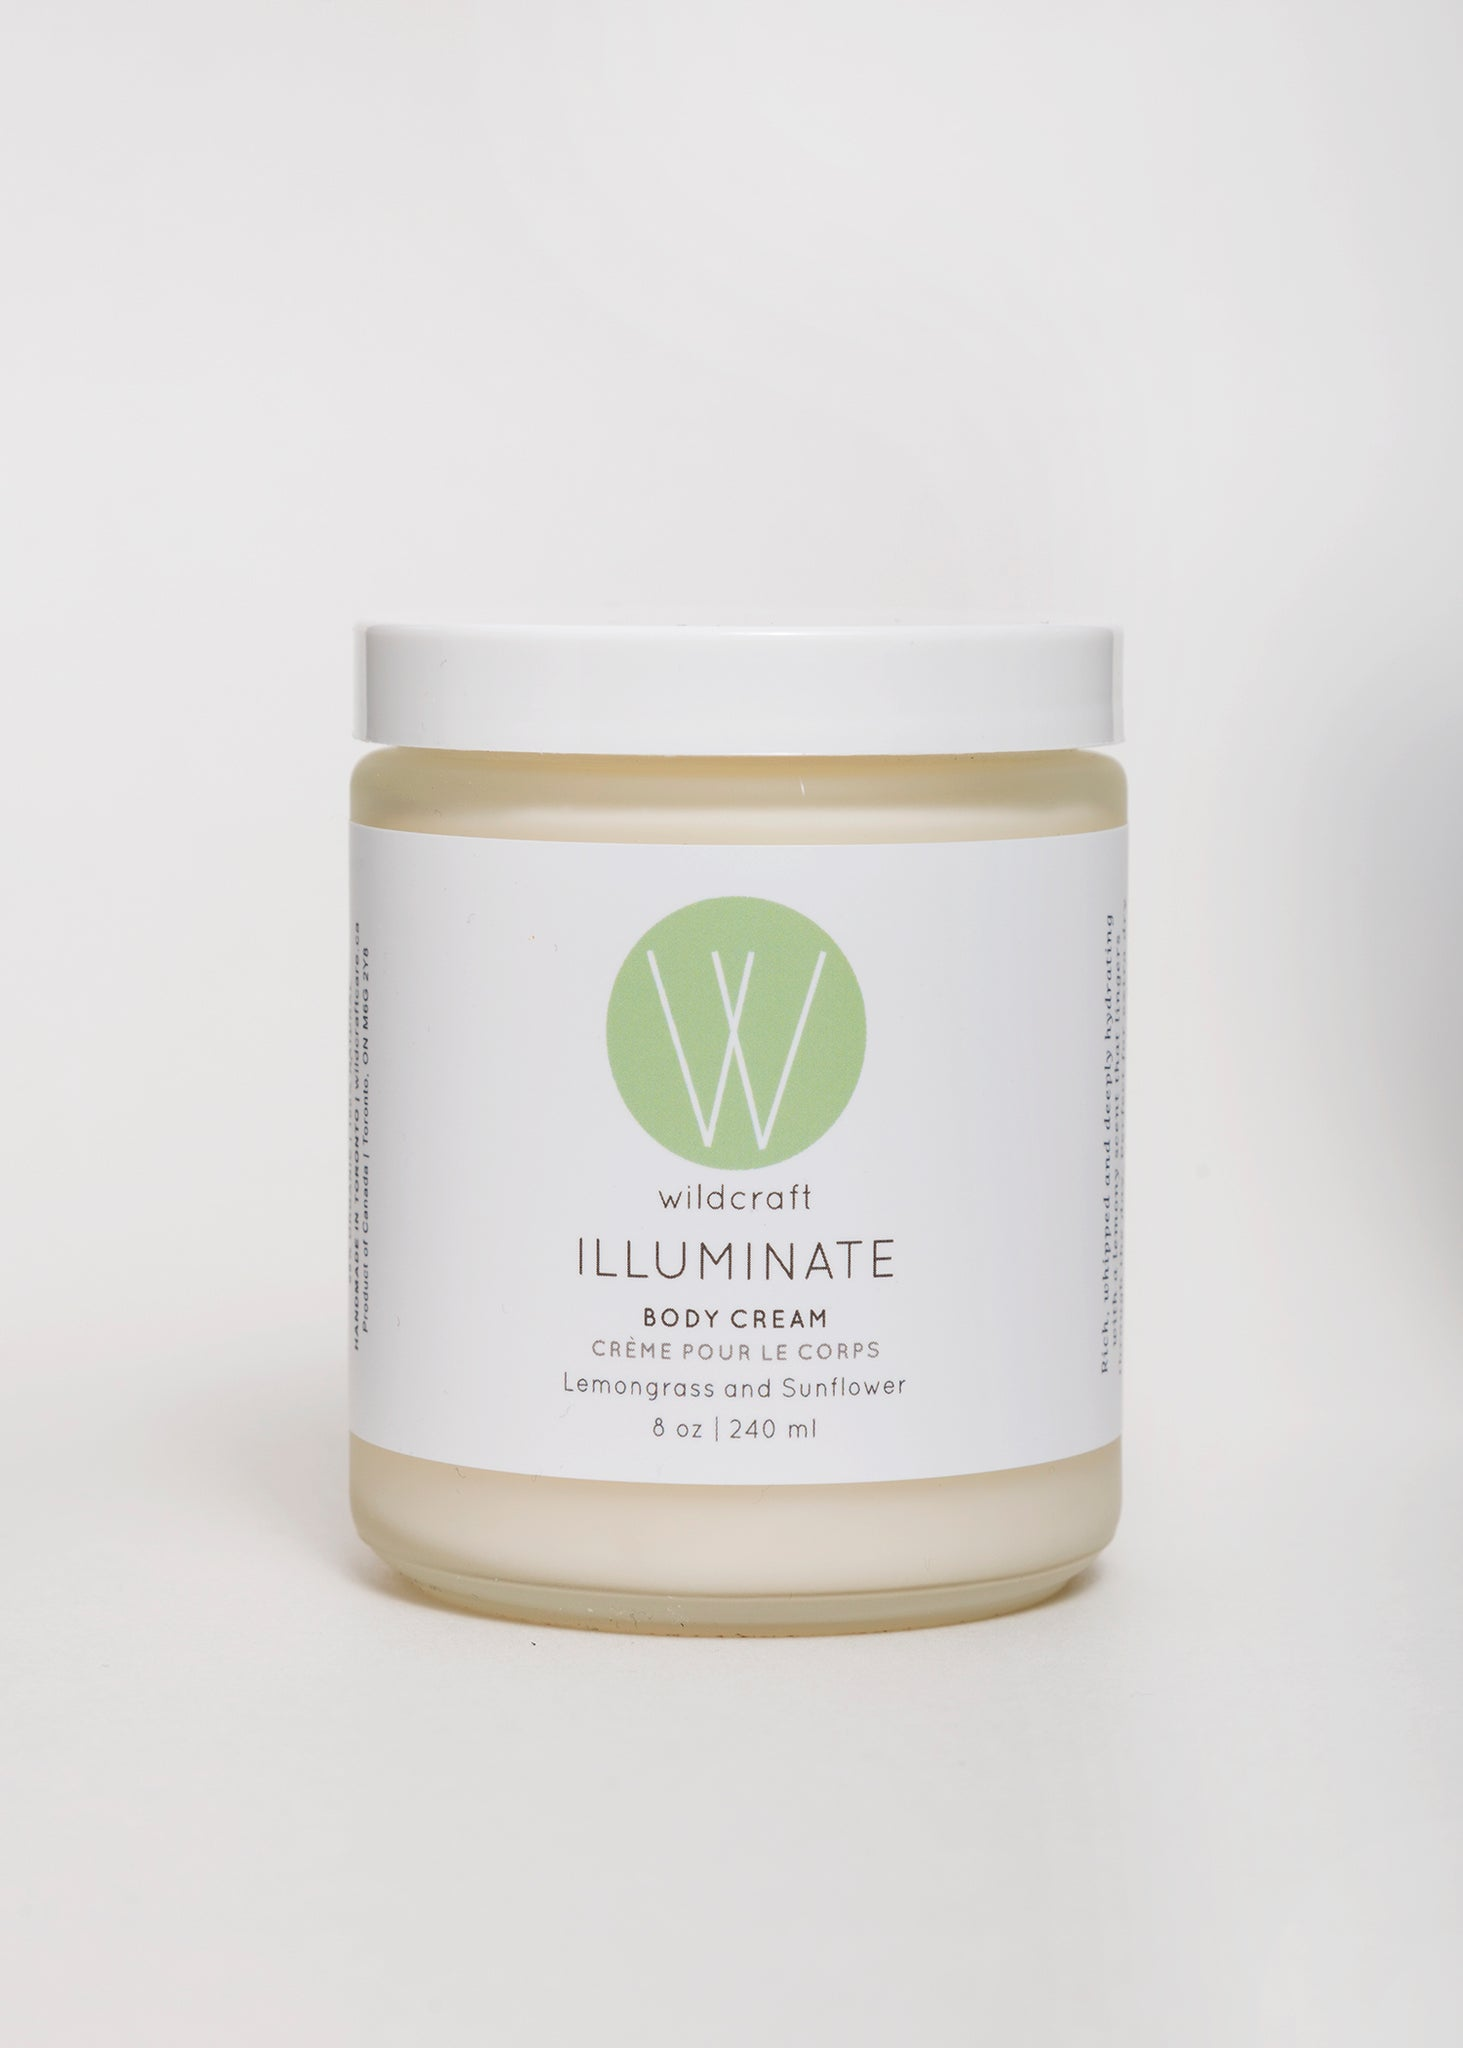 Lemongrass Body Cream by Wildcraft | Goodnight Beauty - natural skin care, body care, sunflower, green beauty, cruelty free, organic, made in Canada